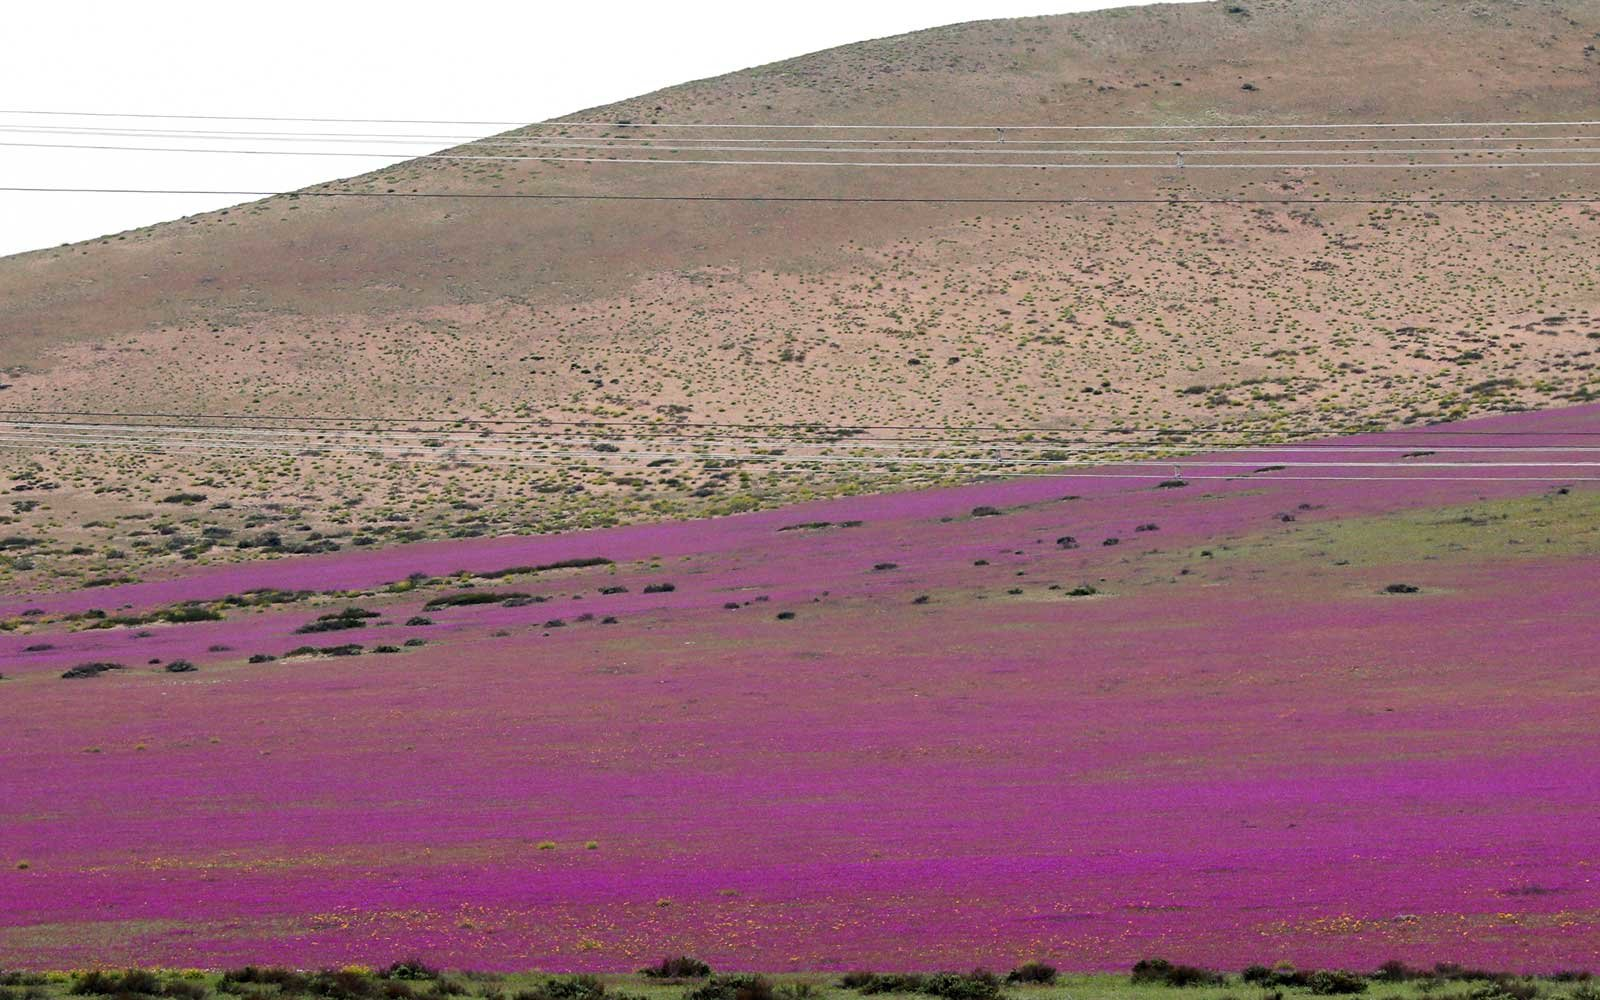 Carpet of Purple Flowers in the Atacama Desert